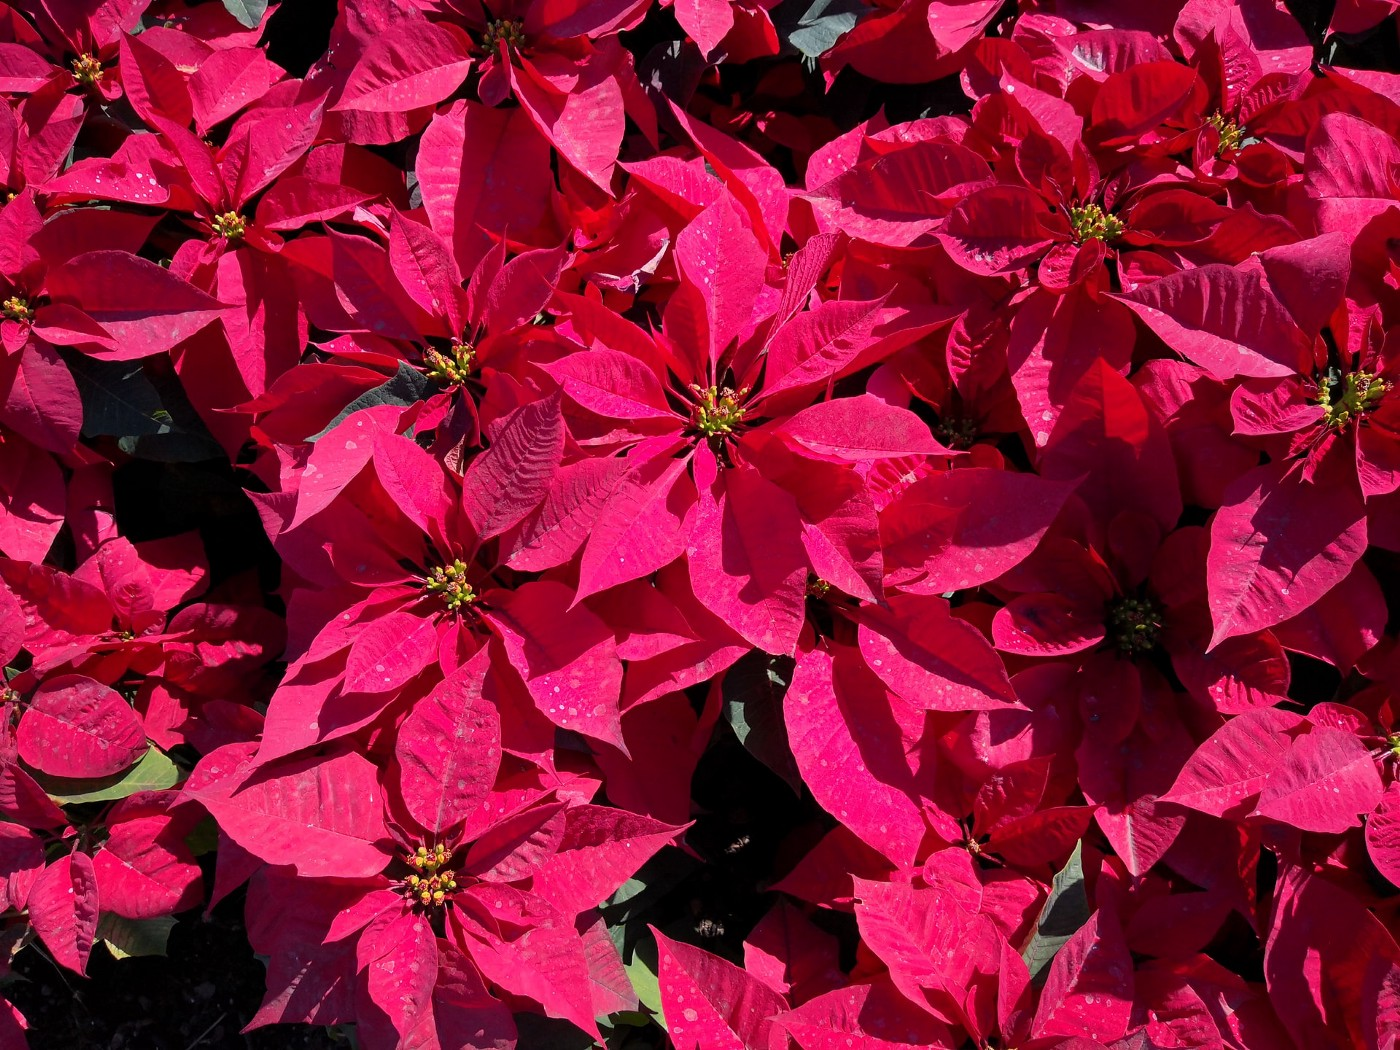 Cluster of red poinsettia flowers